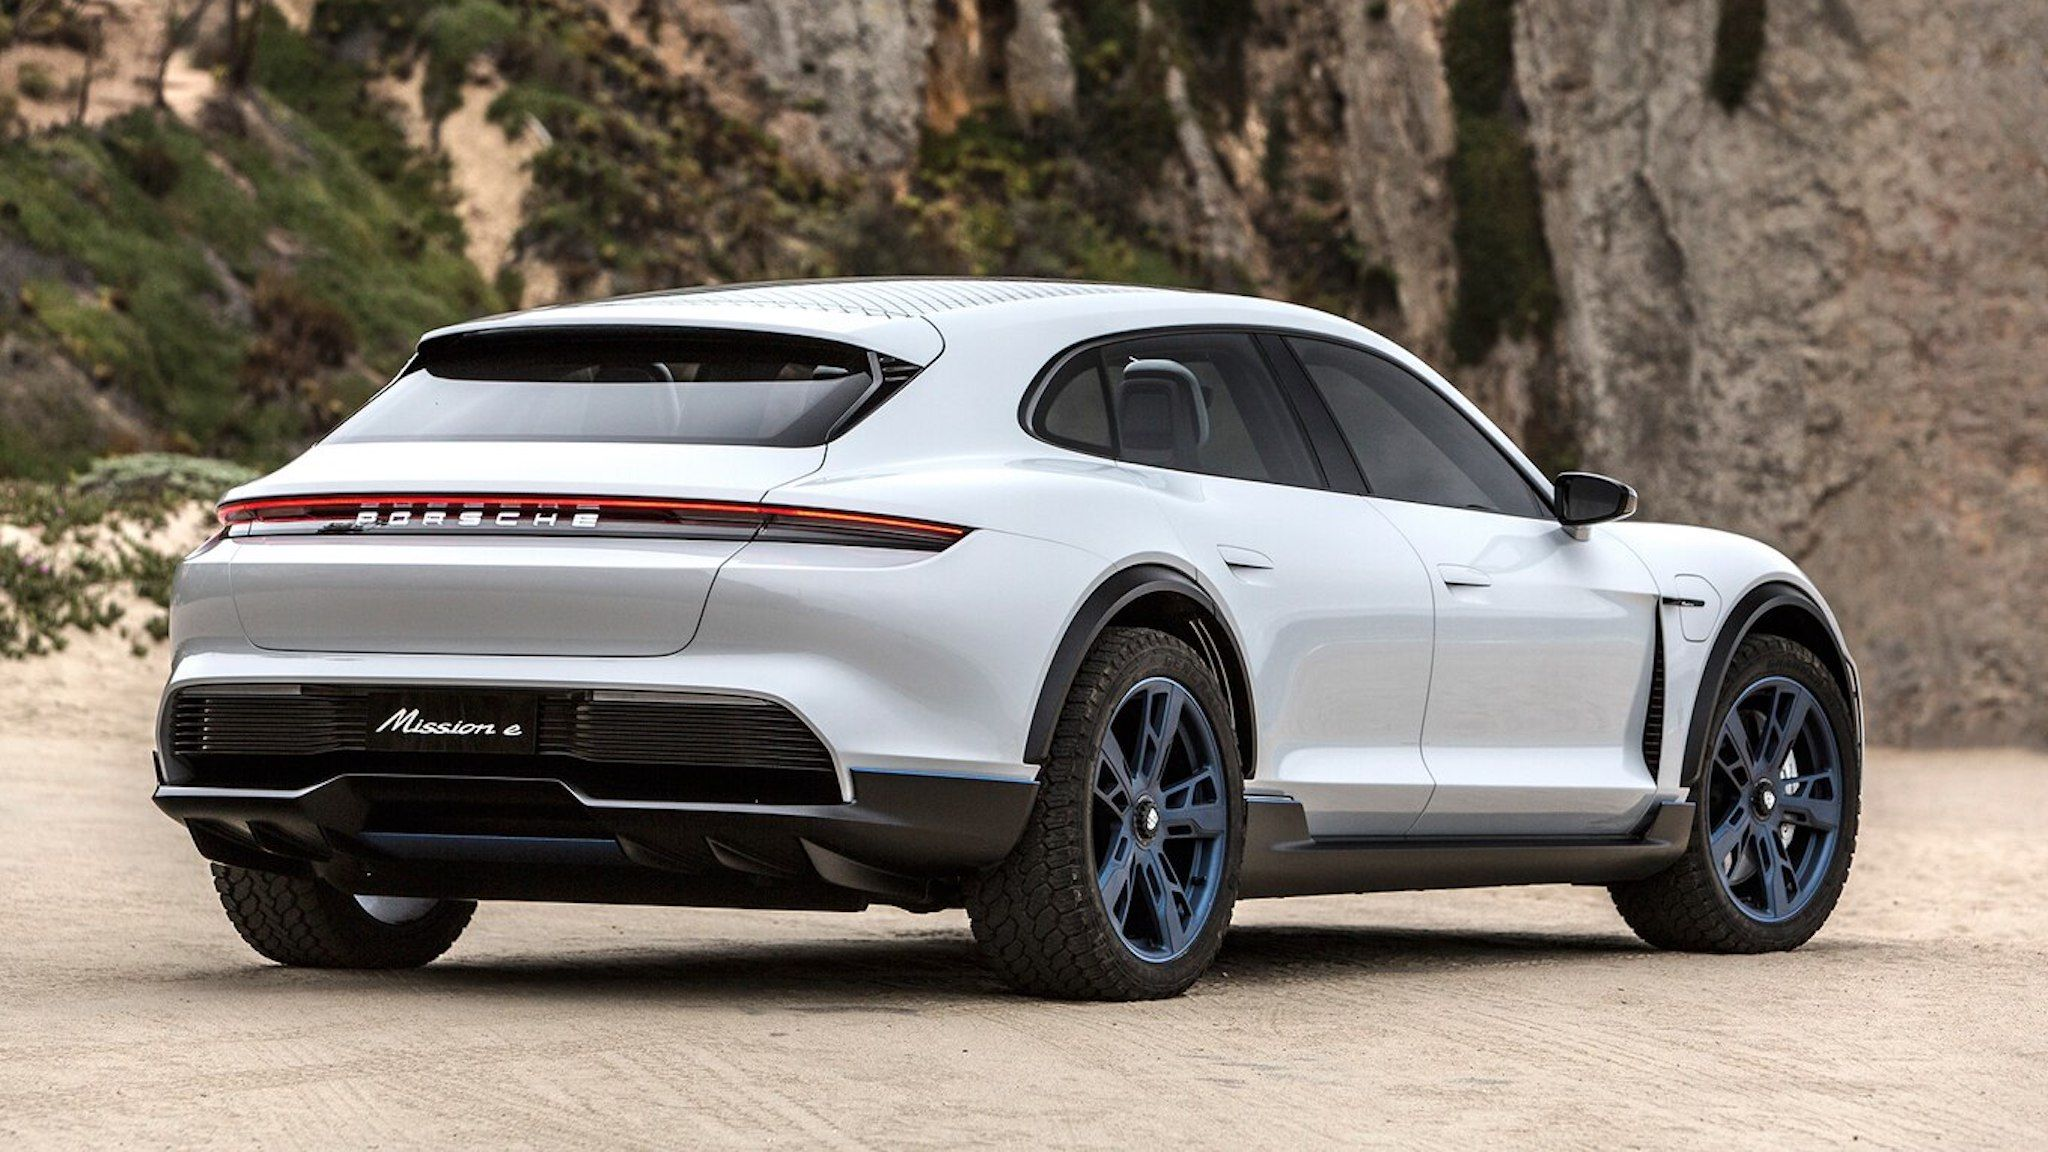 2022 Porsche Taycan Cross Turismo Set To Debut In Early 2021 Porsche Mission Porsche Taycan Mission E